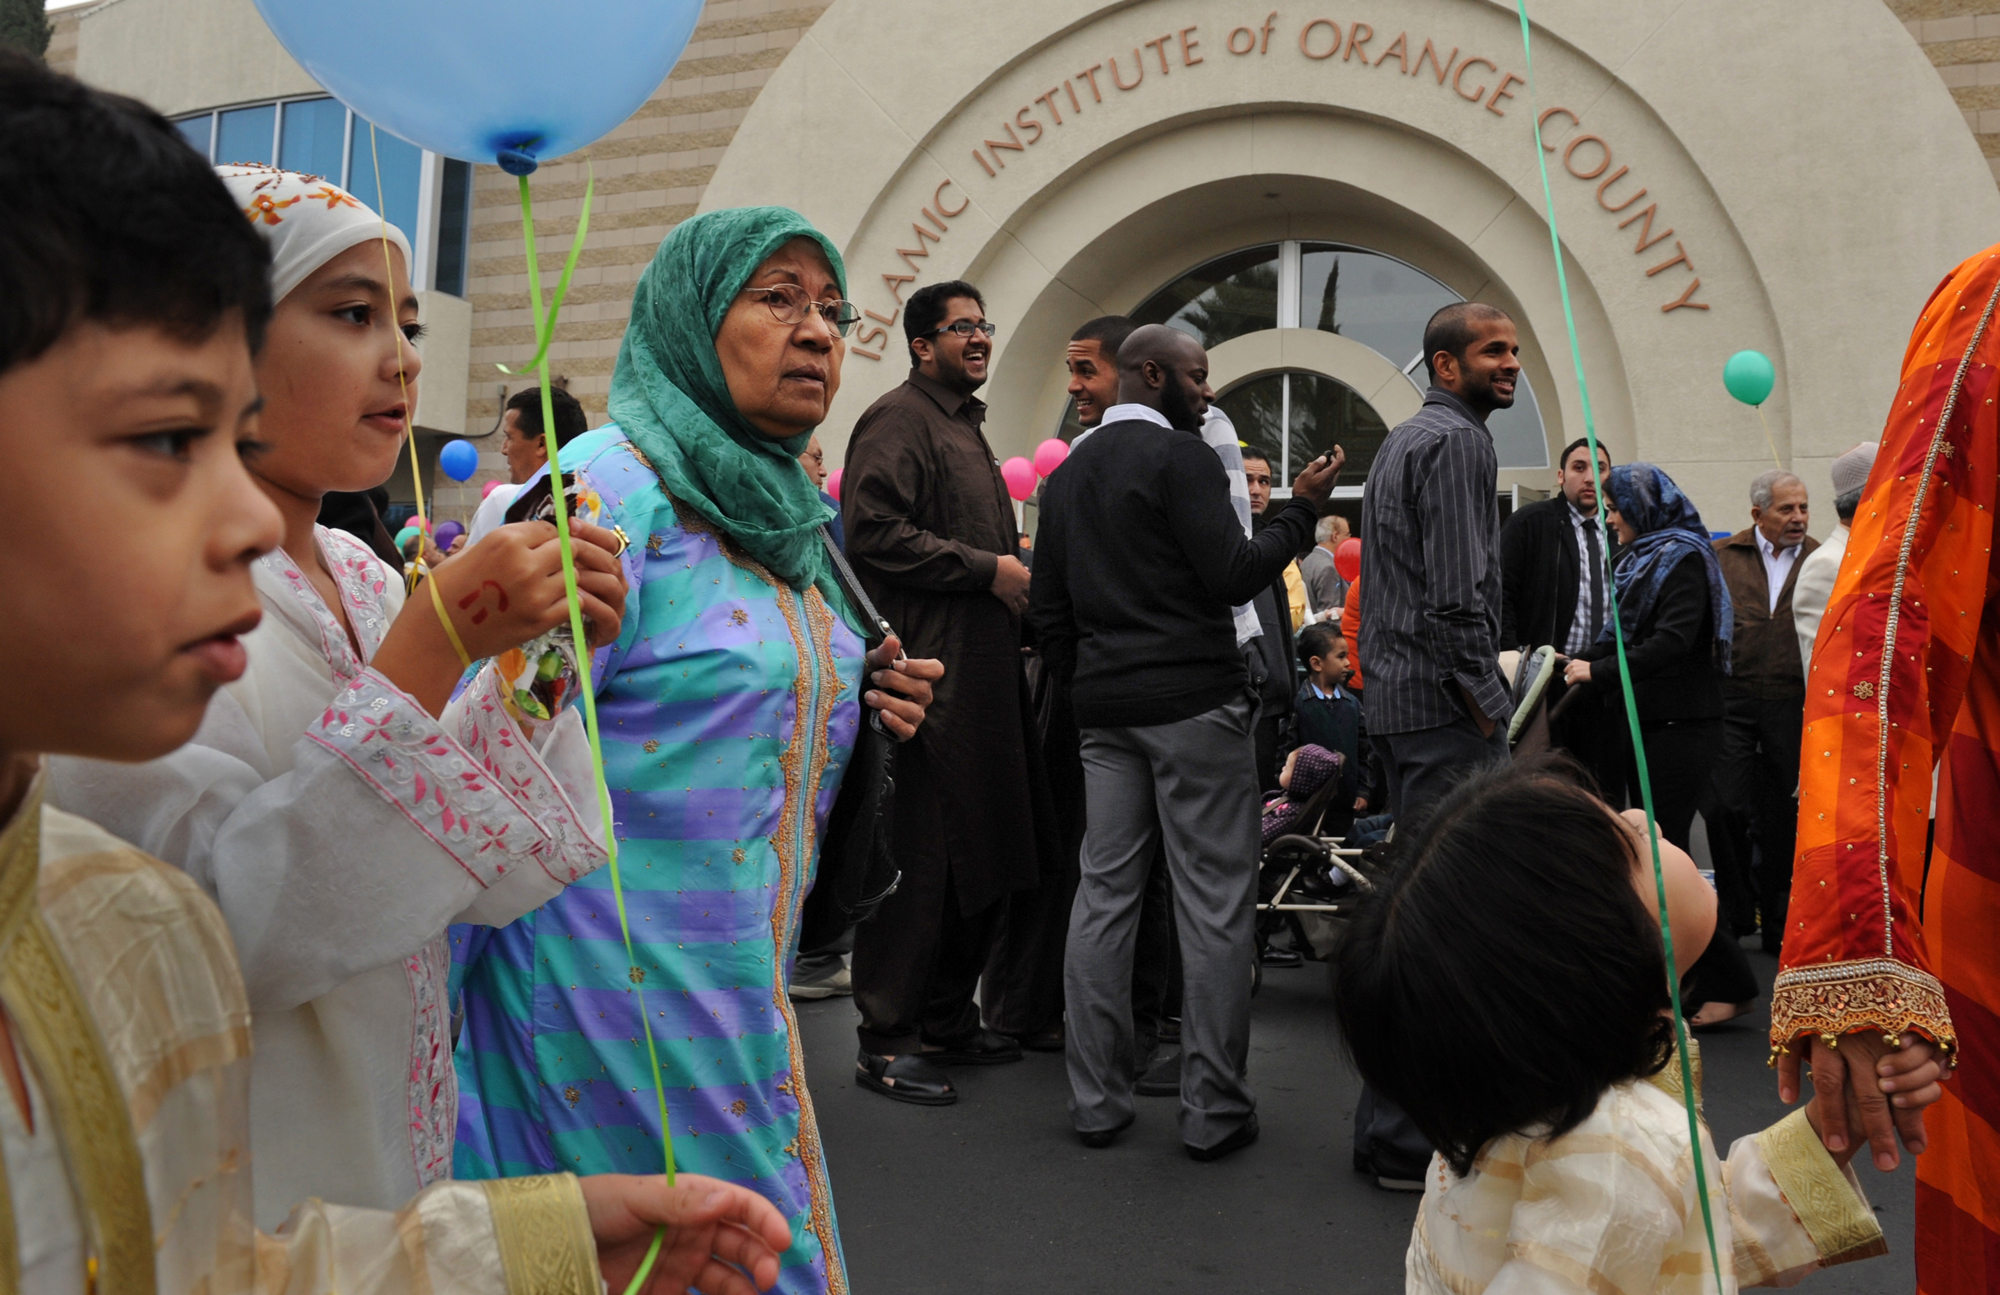 Khadija Bawahab, 3rd from left, walks with her grandchildren, from left, Rayhan Bawahab, Jamila Bawahab, and Bilal following Eid al-Adha prayers at the Omar al Farouk mosque on November 16, 2010, in Anaheim, CA.  There is growing tension between the Muslim community of southern California and the FBI after an informant, Craig Monteilh, infiltrated local mosques - including this mosque - to gather information only a month after local FBI leaders told the leaders of the Muslim community that the FBI would do no such thing.  Now, Monteilh is suing the FBI over their treatment of him and he's telling details of his operation. (Photo by Jahi Chikwendiu/The Washington Post via Getty Images)